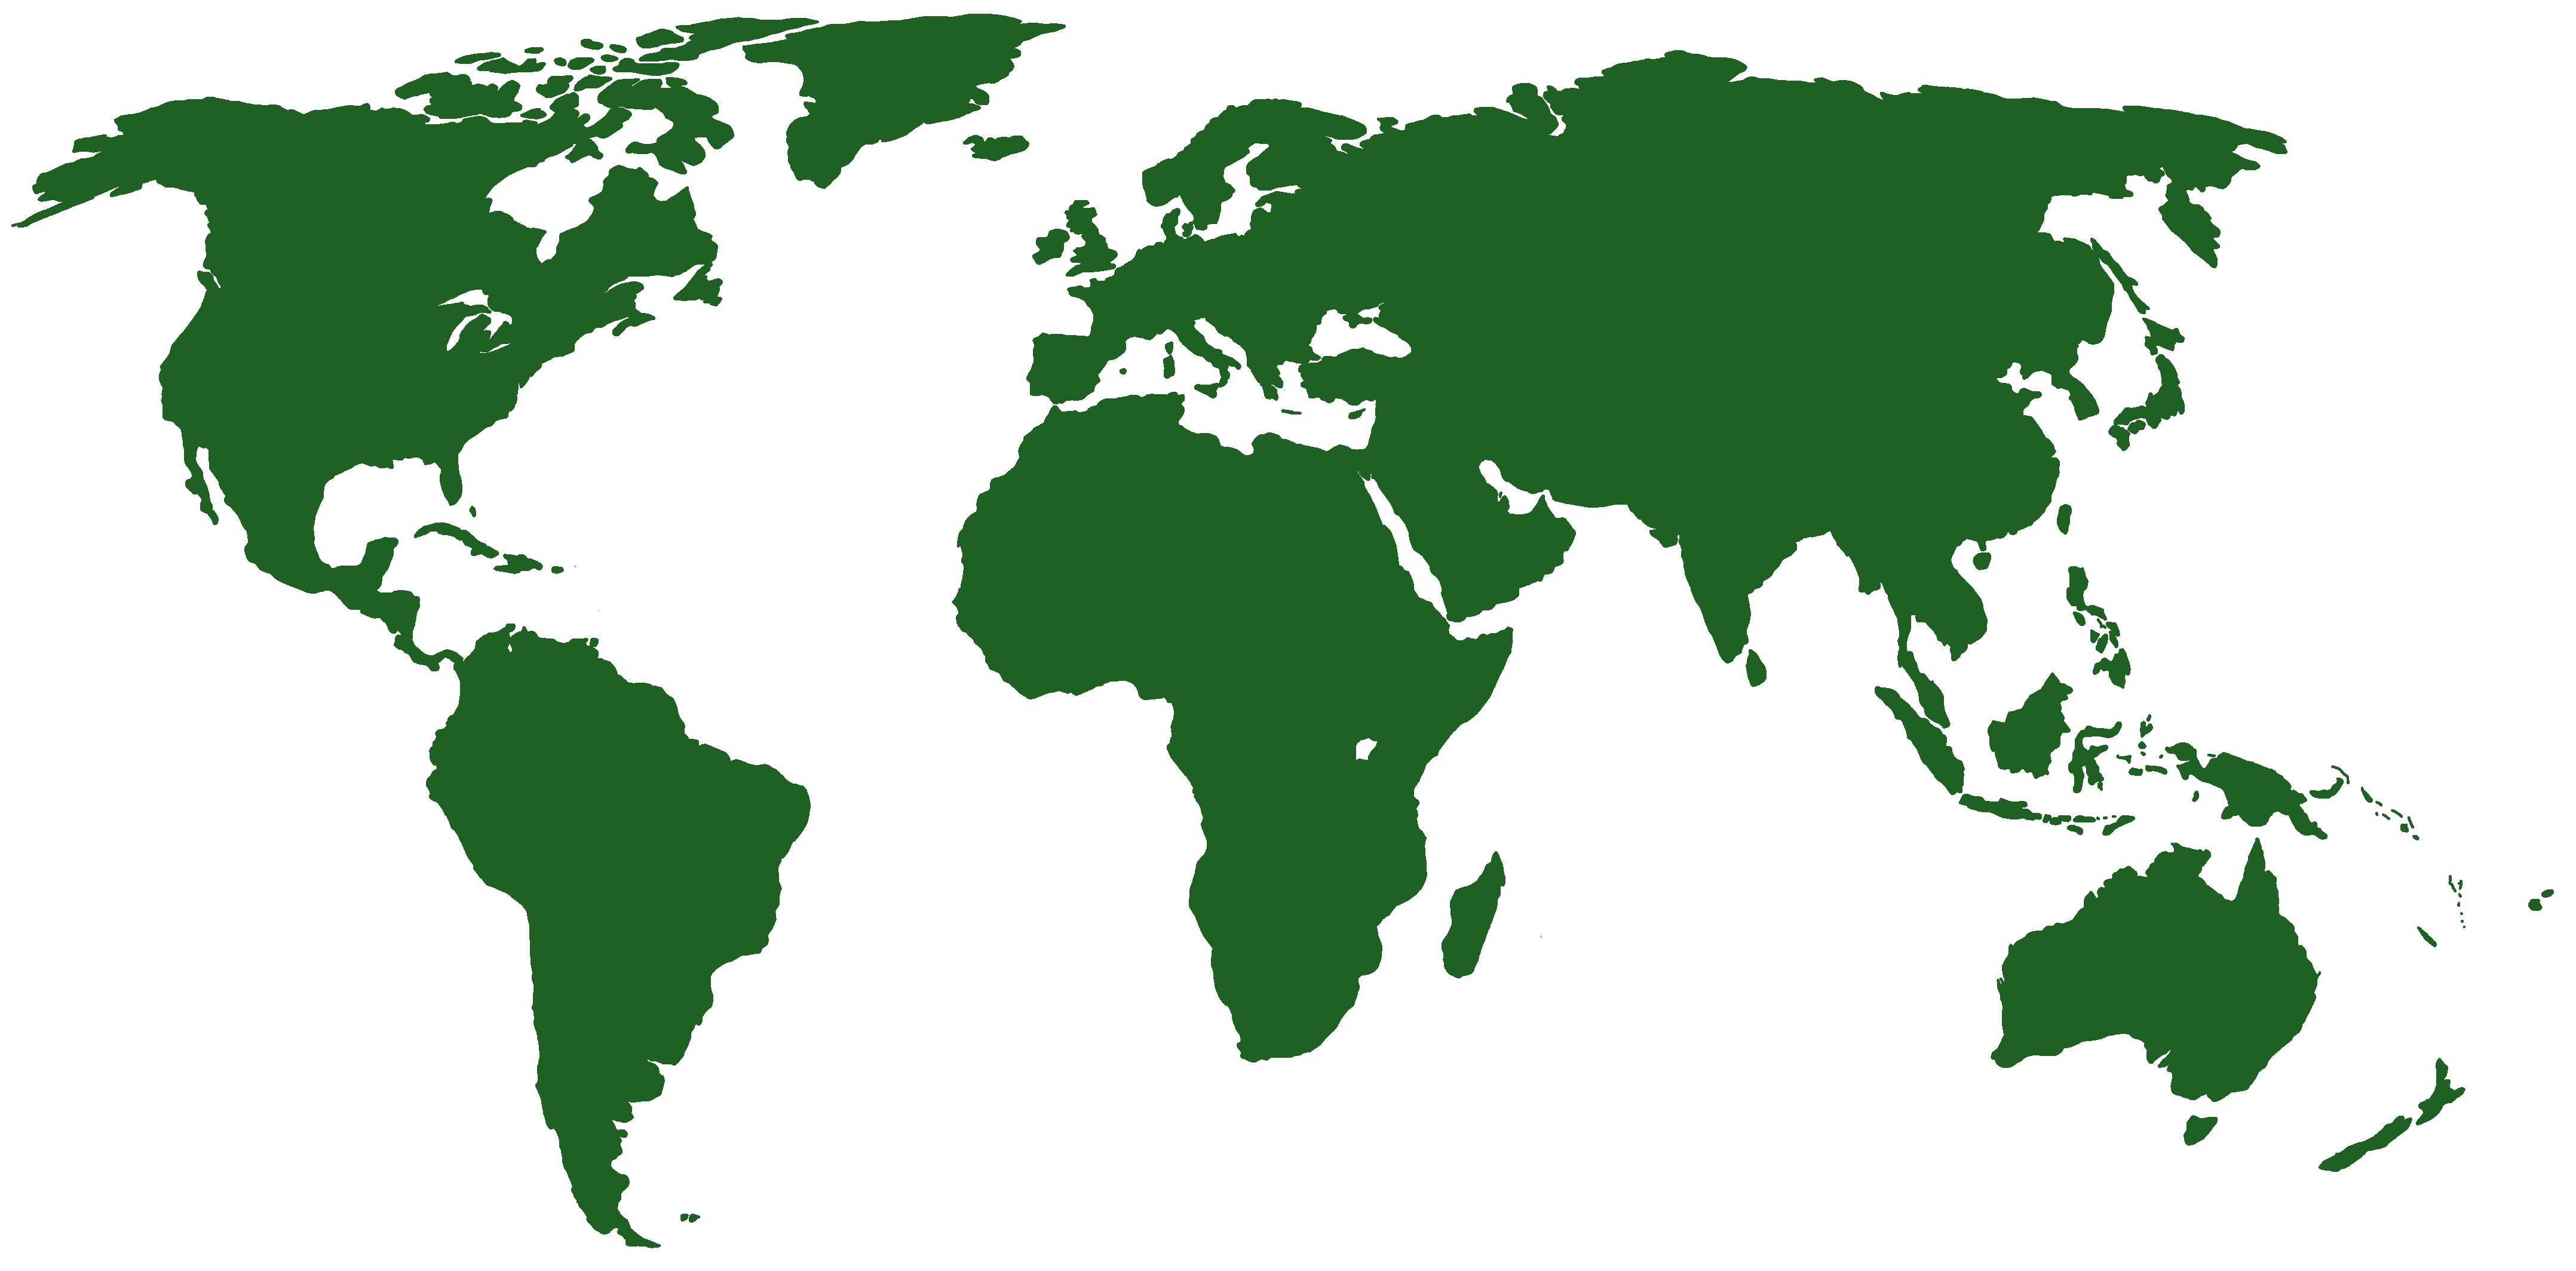 Blank map of the world png. Hd transparent images fileworld